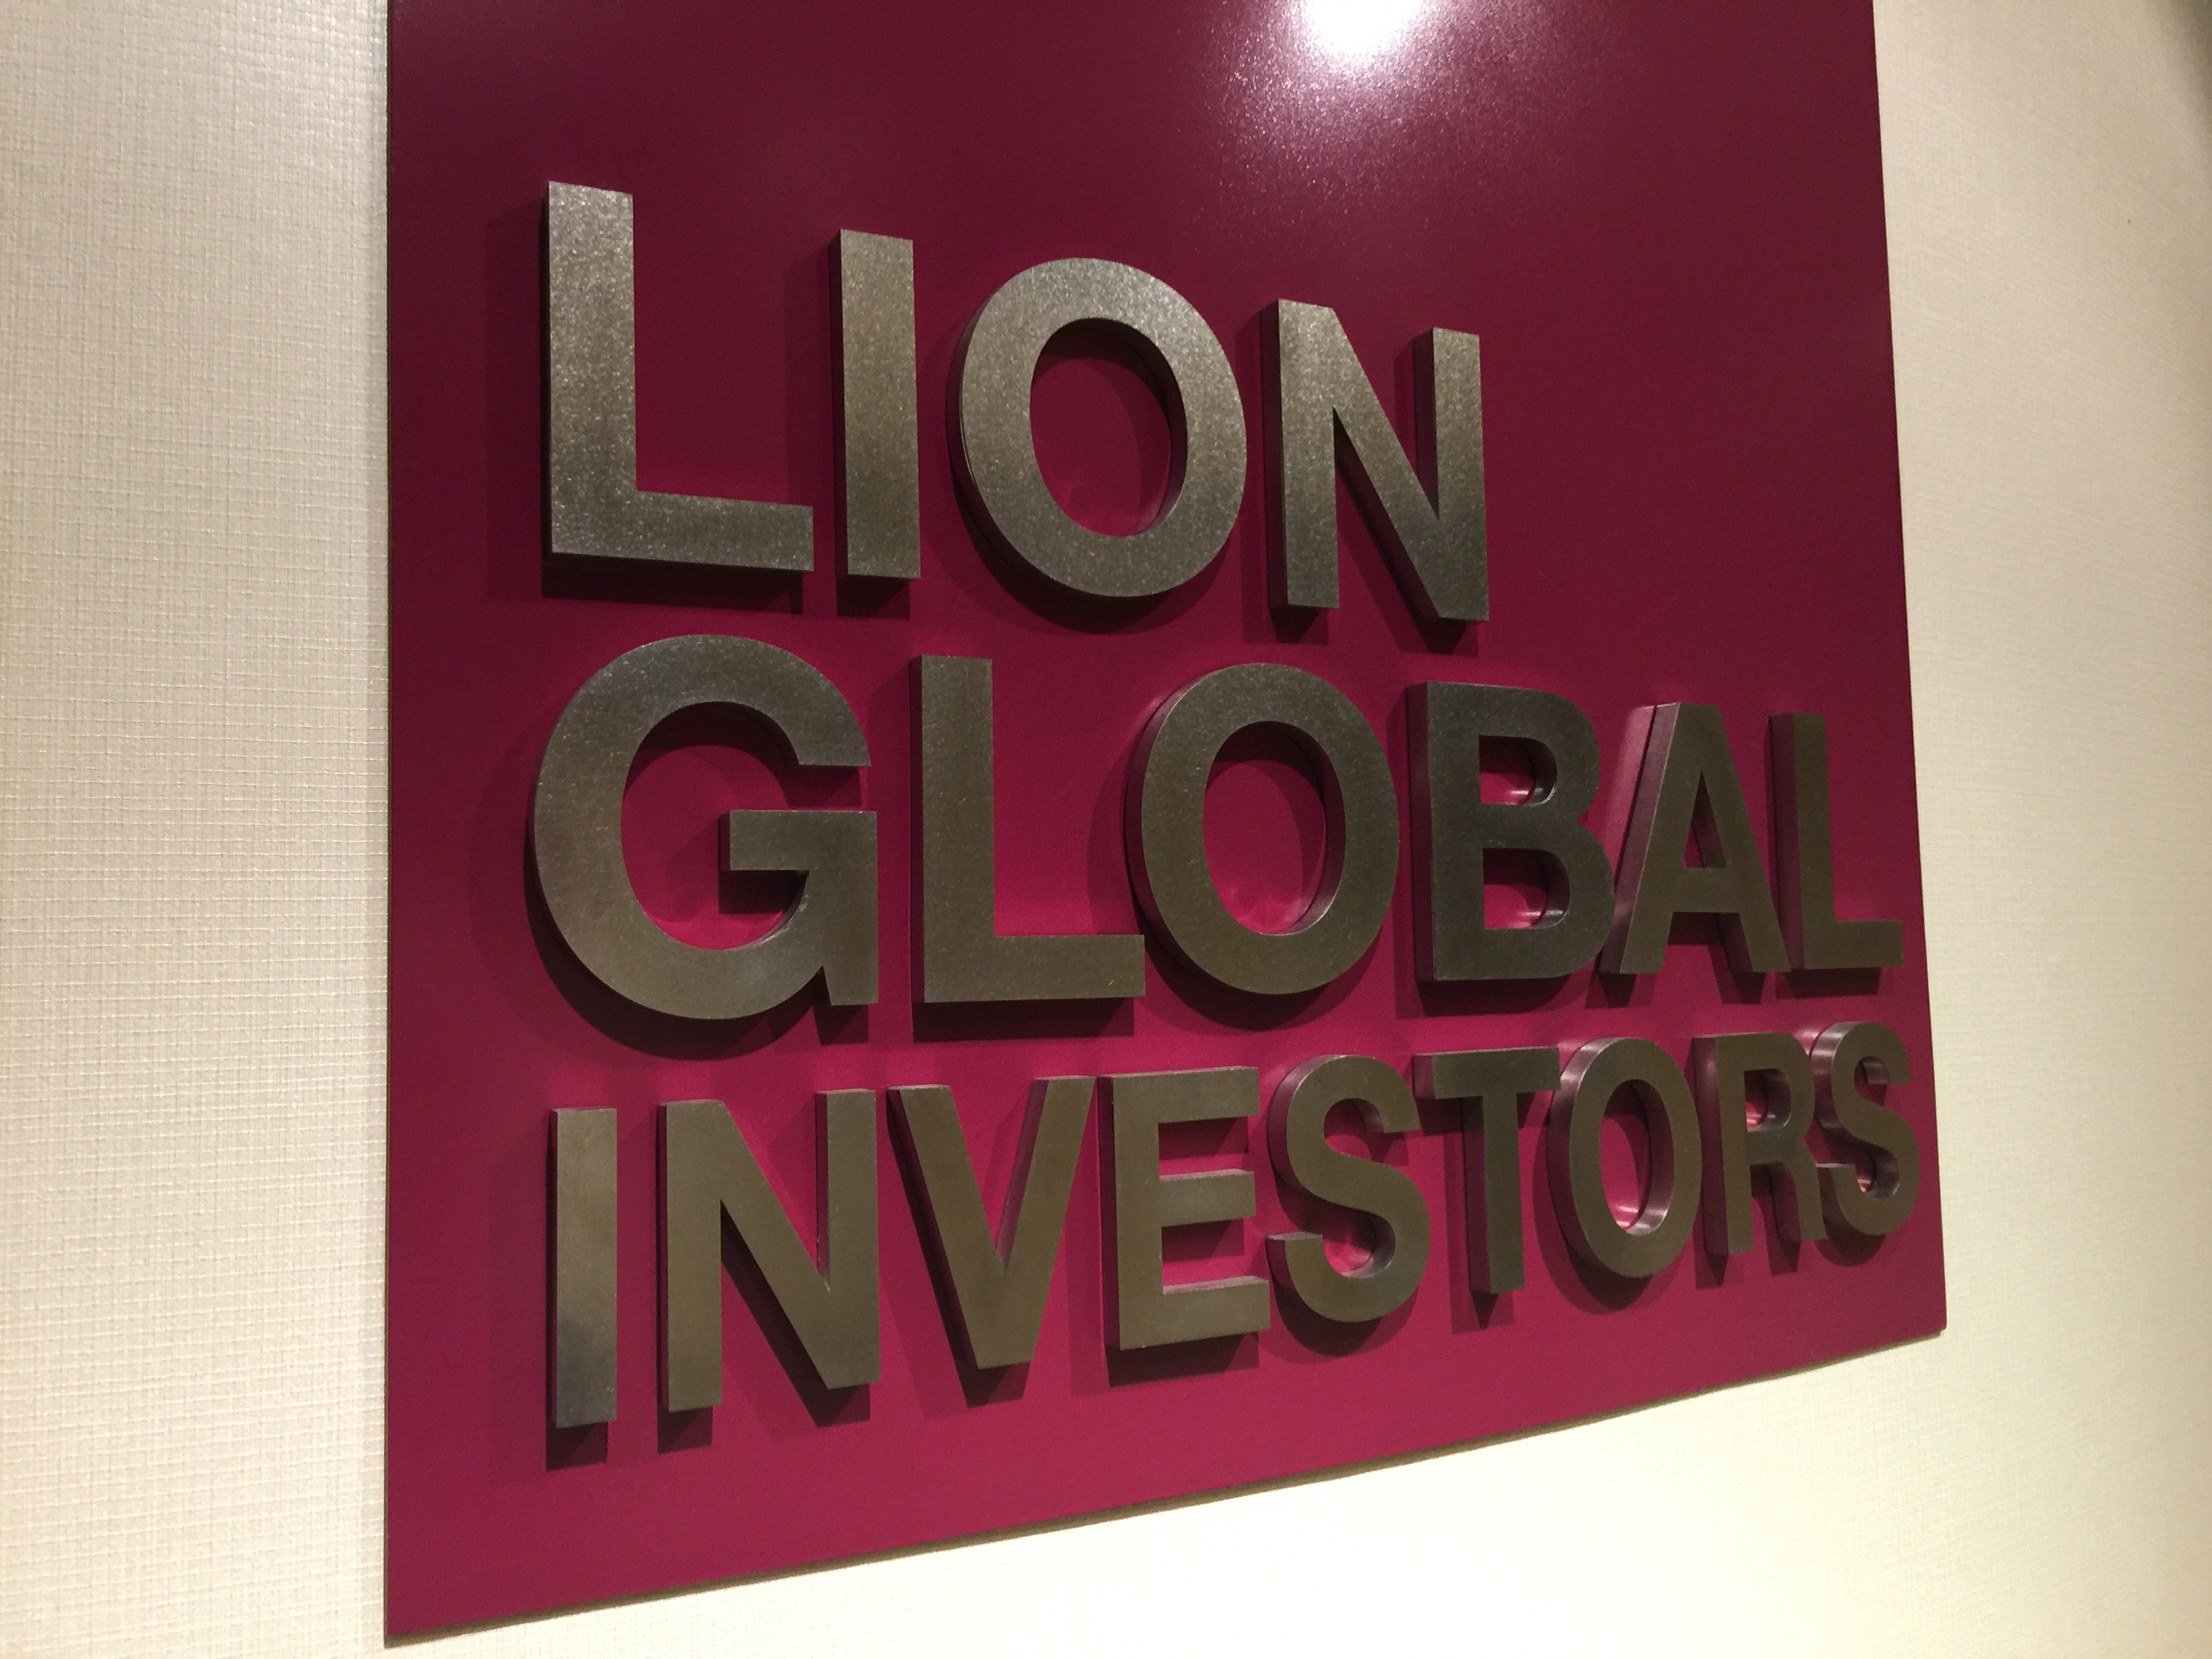 The Lion-Phillip S-REIT ETF is targeting demand for high-yield investments. (Photo: REITsWeek)